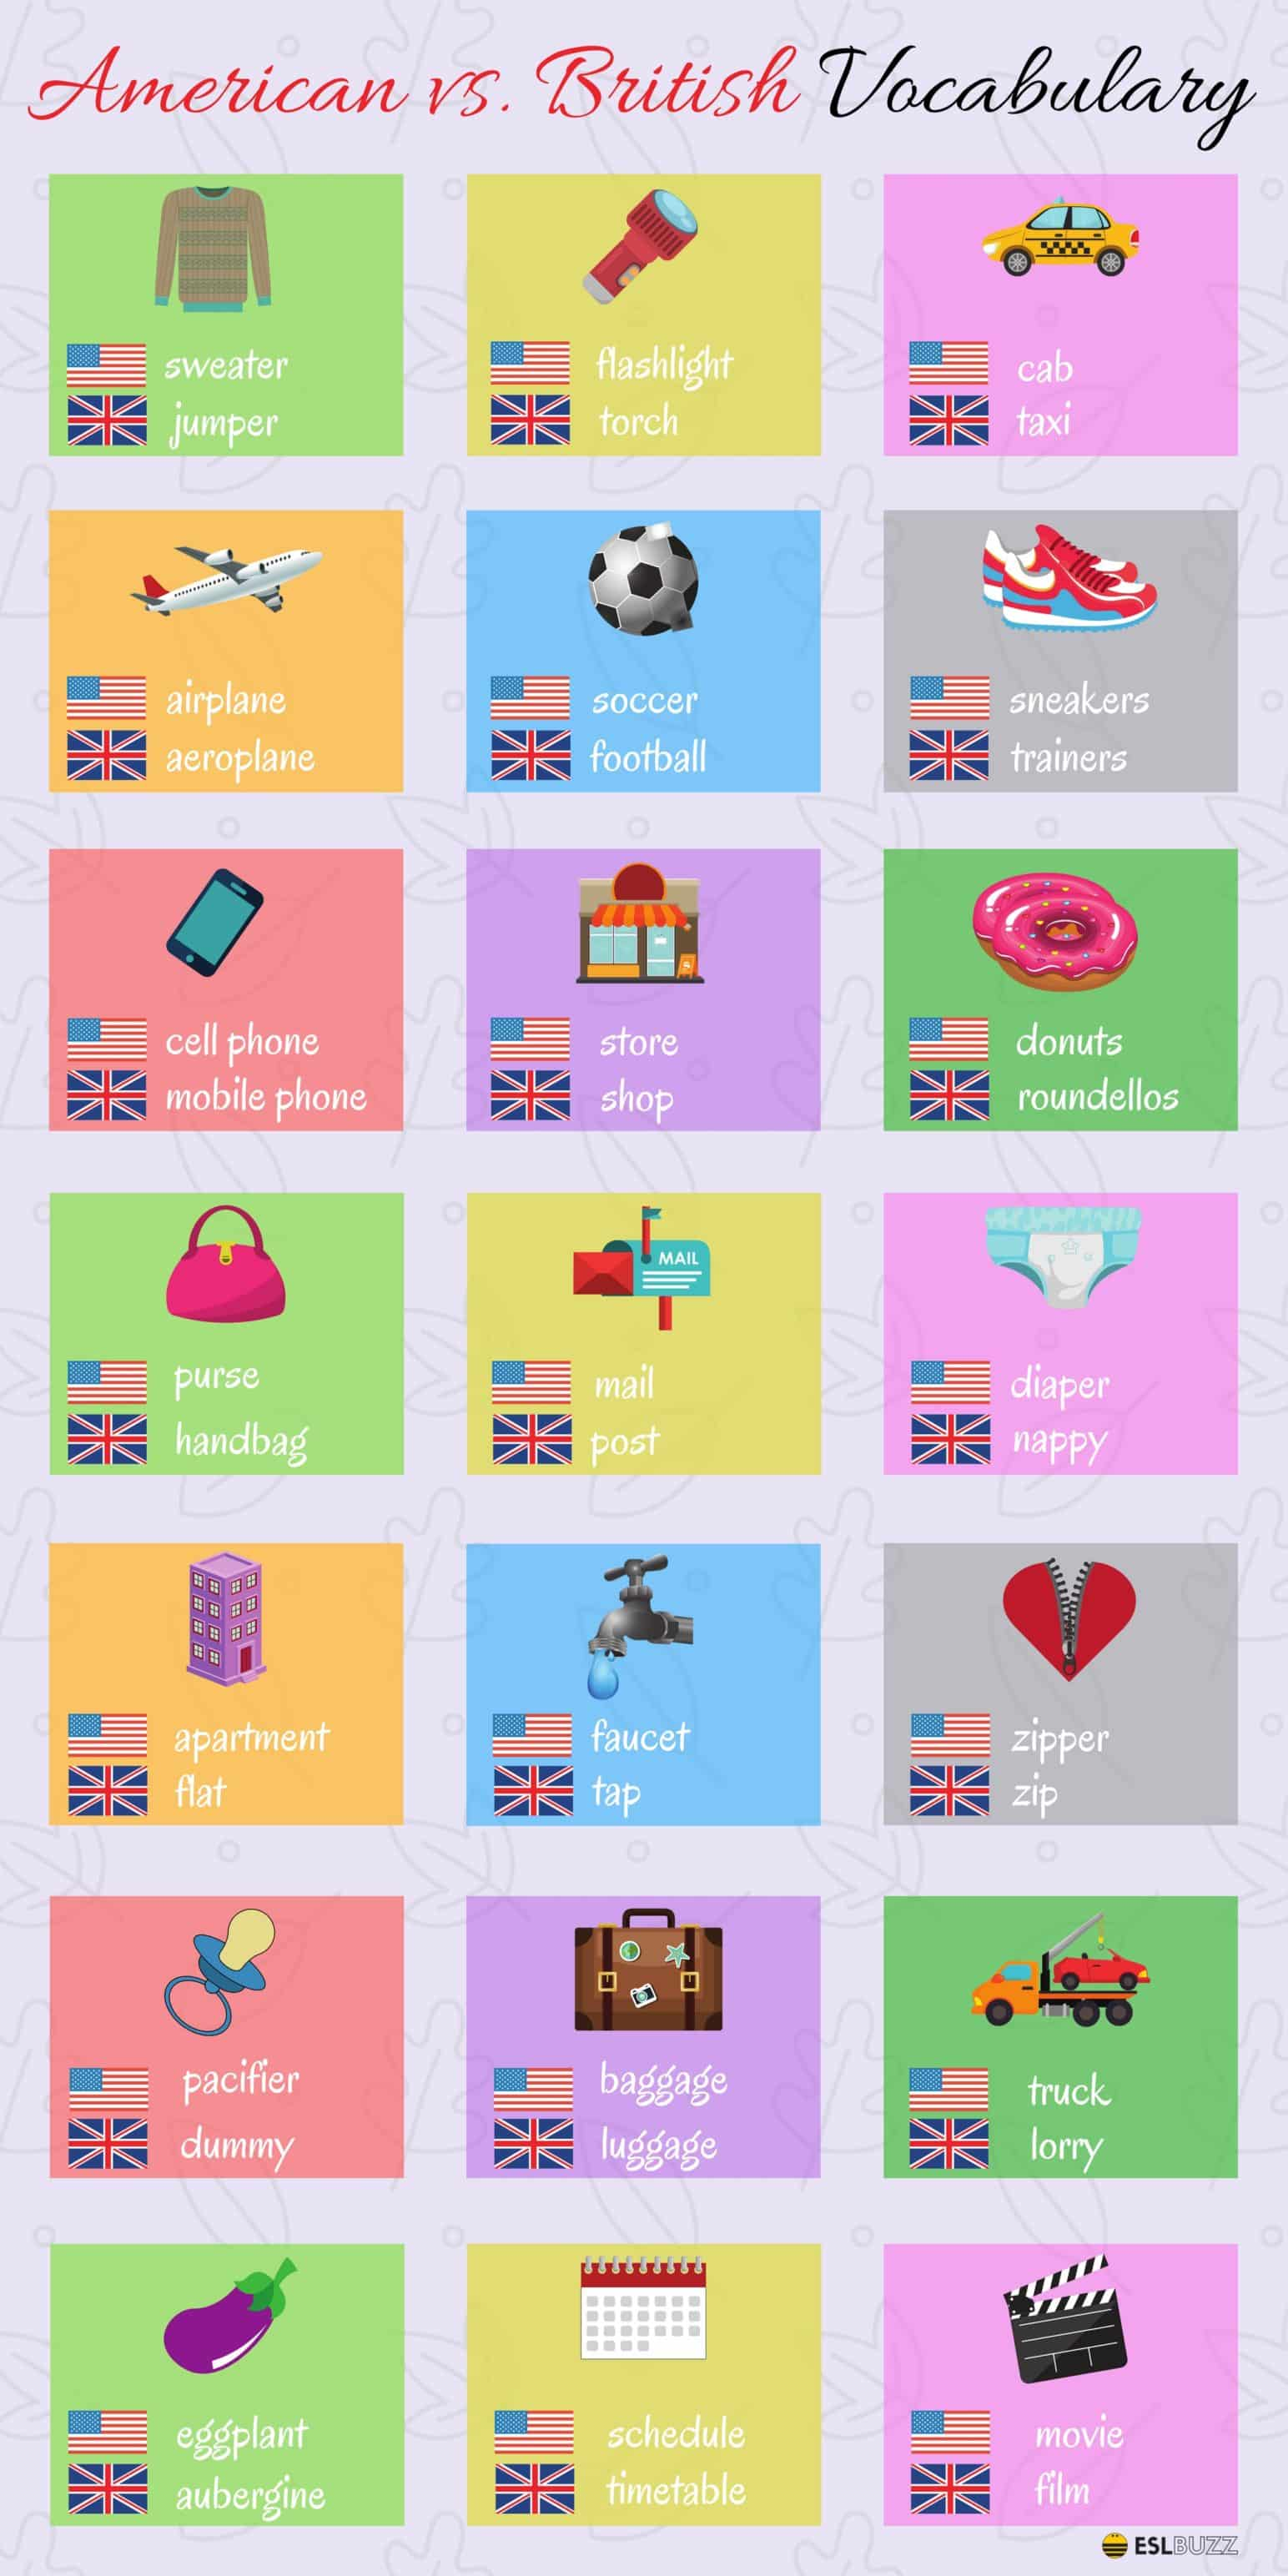 British vs American English: What are the Differences? Popular Words 4